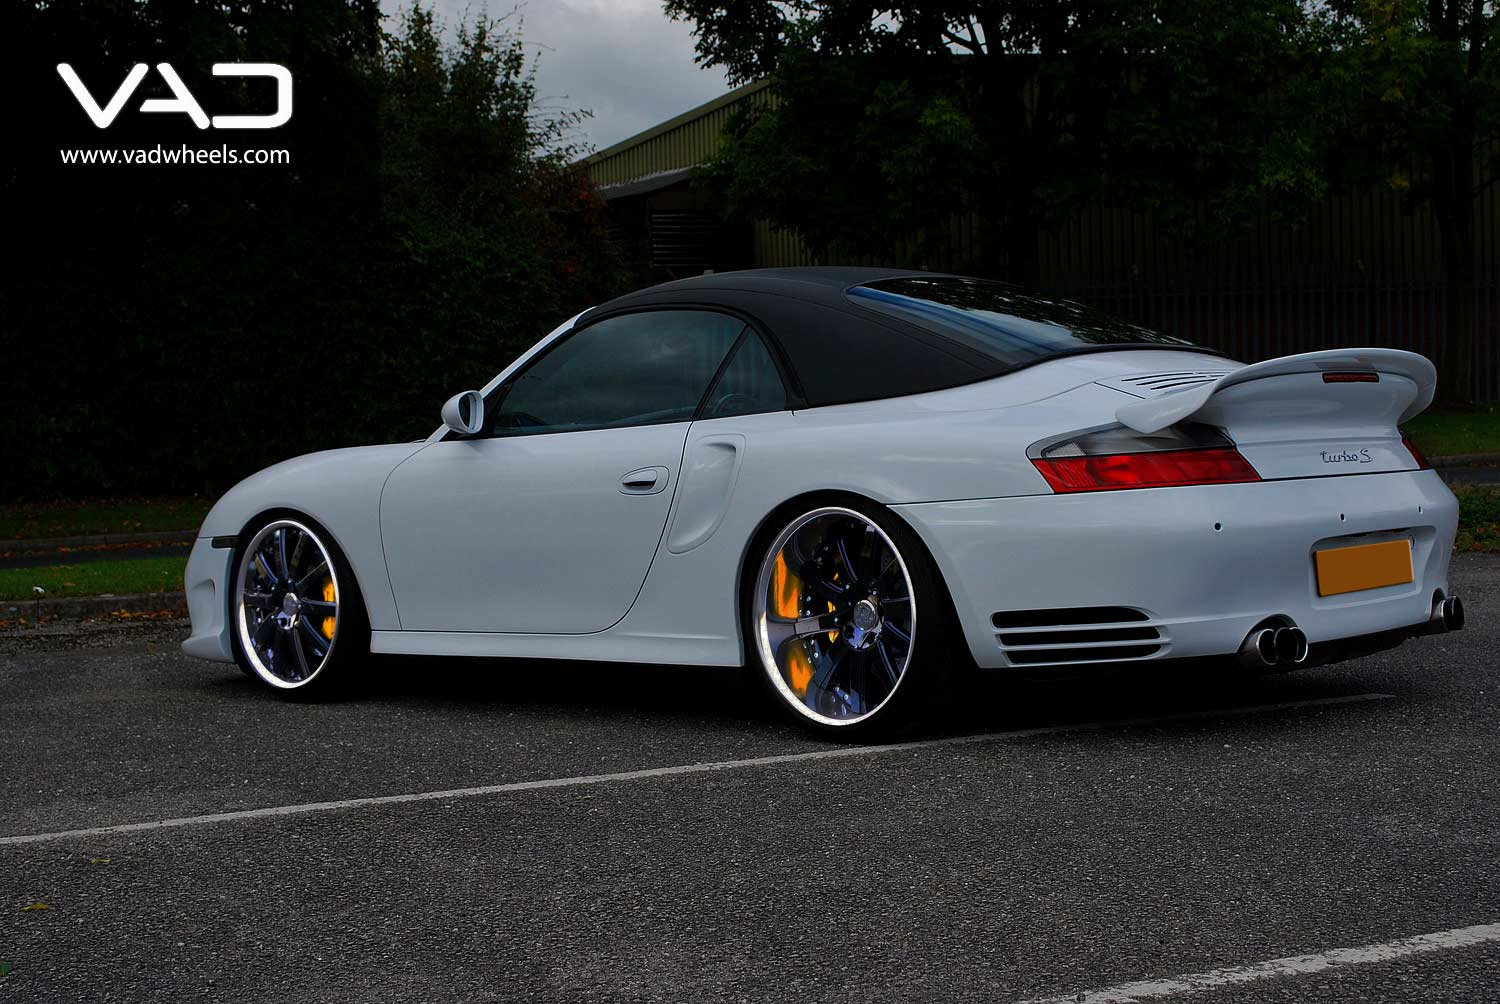 Porsche-996-Turbo-Cabriolet-Fitted-With-20''-Altstadt-F100-Gloss-Black